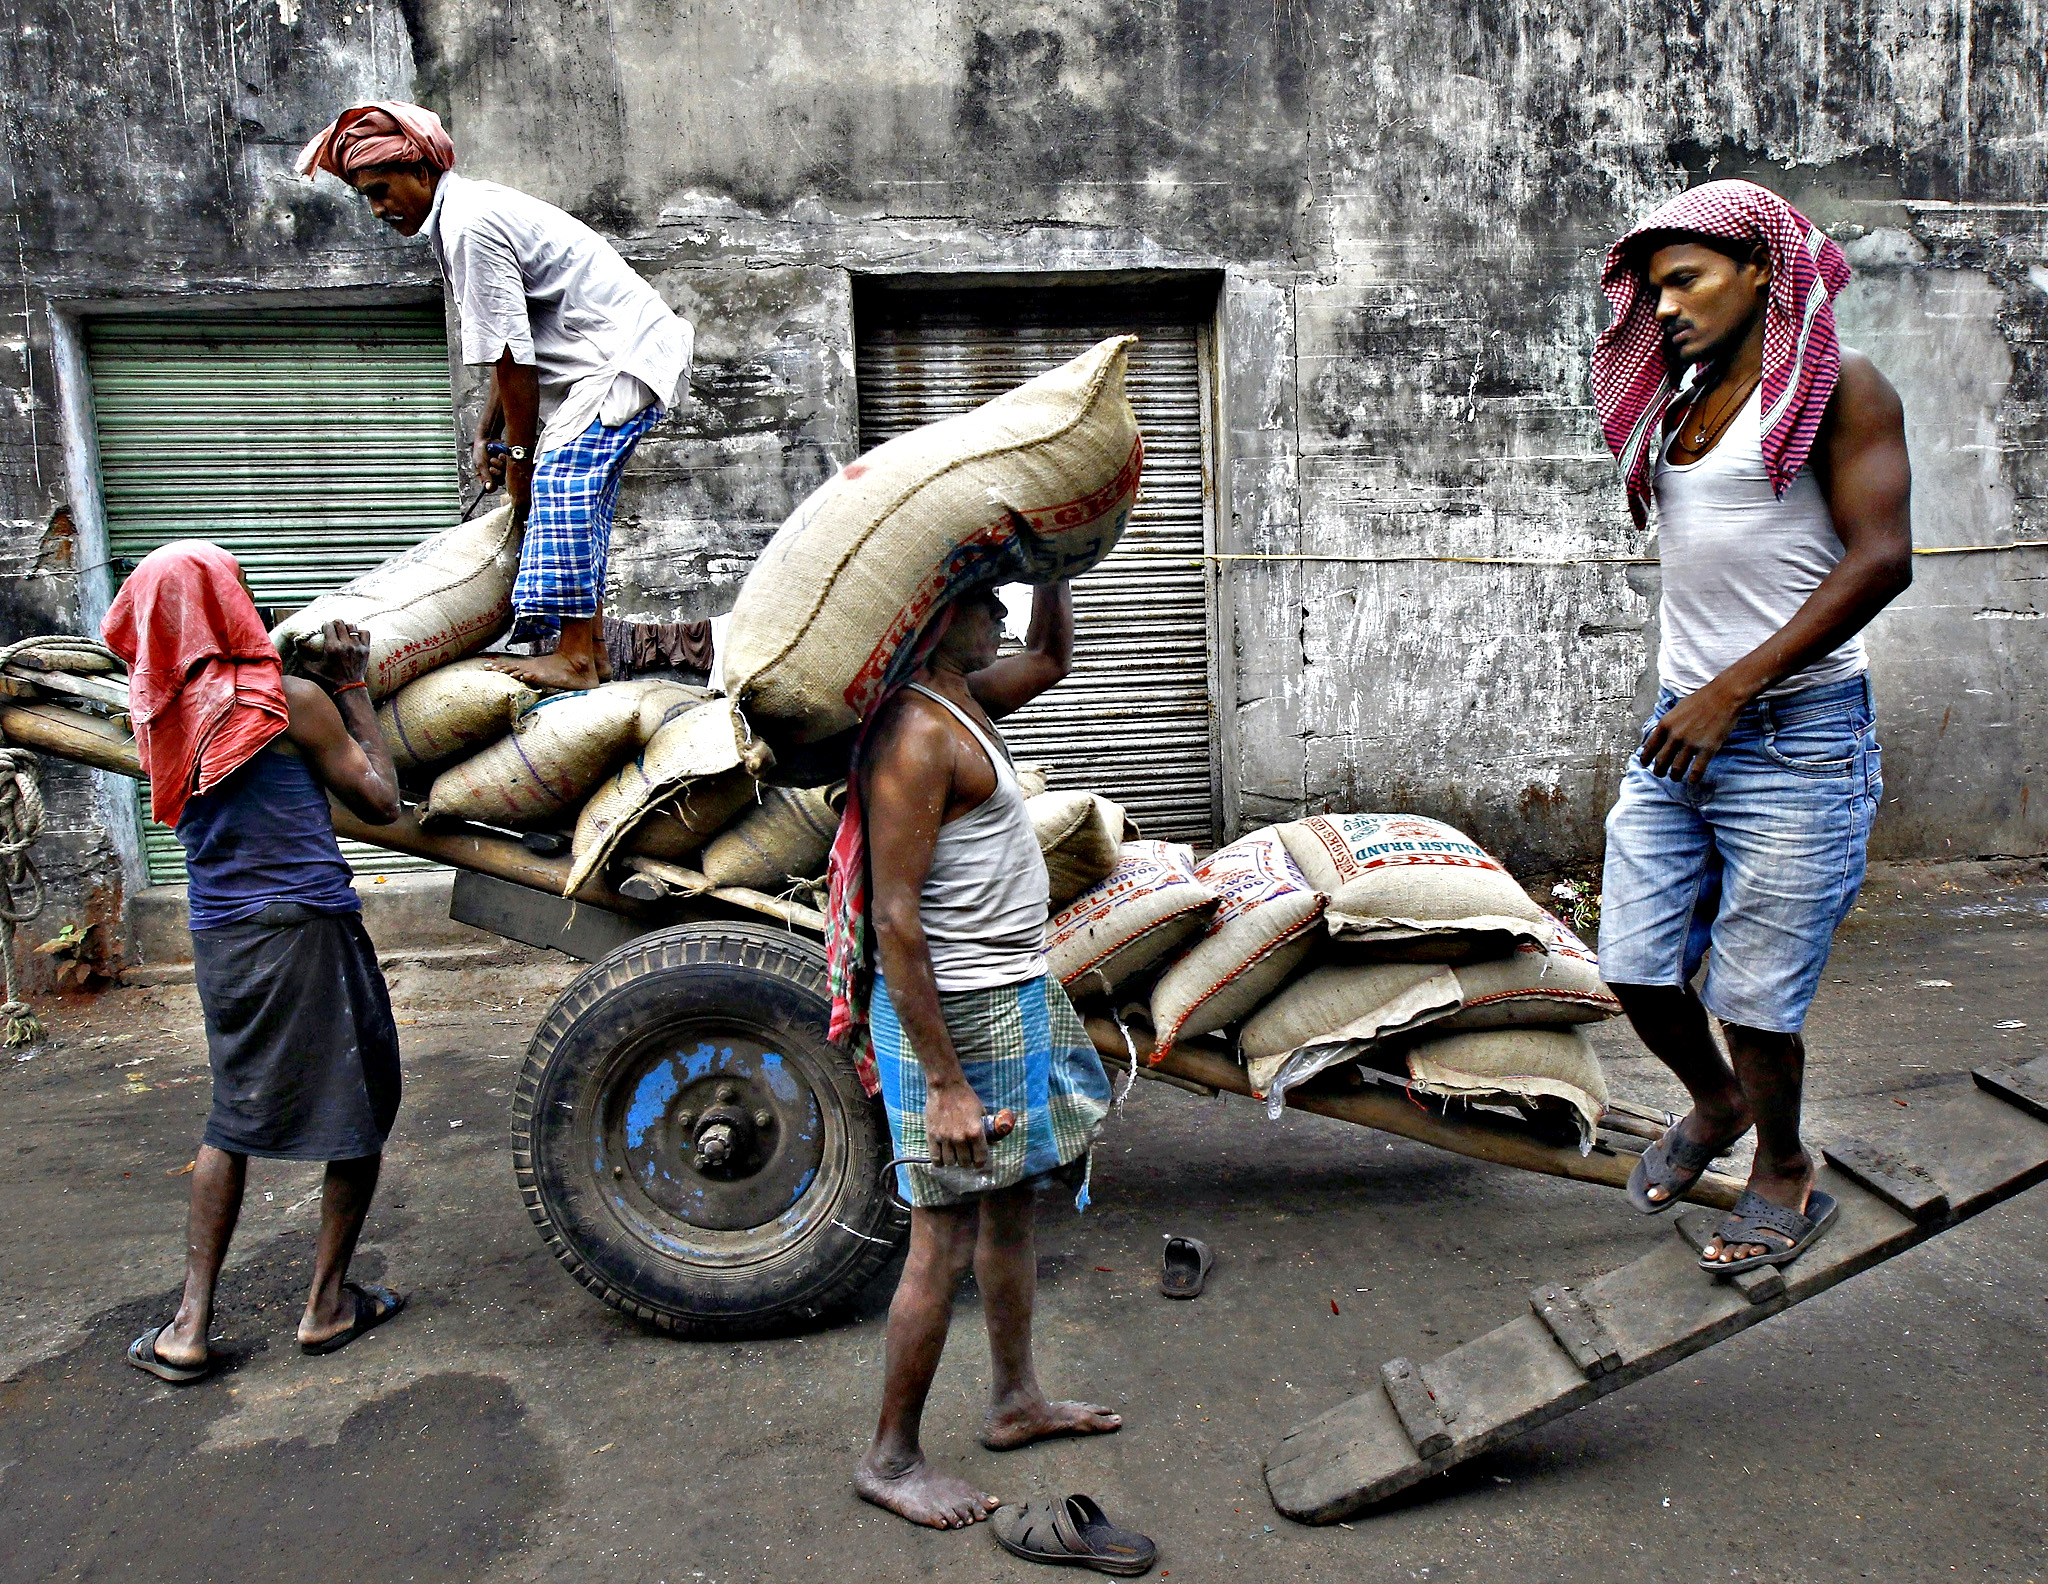 Labourers unload sacks of rice from a handcart at a wholesale market in Kolkata, India, December 14, 2015. India's wholesale prices fell for a 13th straight month in November, but a sharp pickup in food prices and a pending wage hike for millions of government employees are likely to keep policymakers worried about potential inflationary risks.